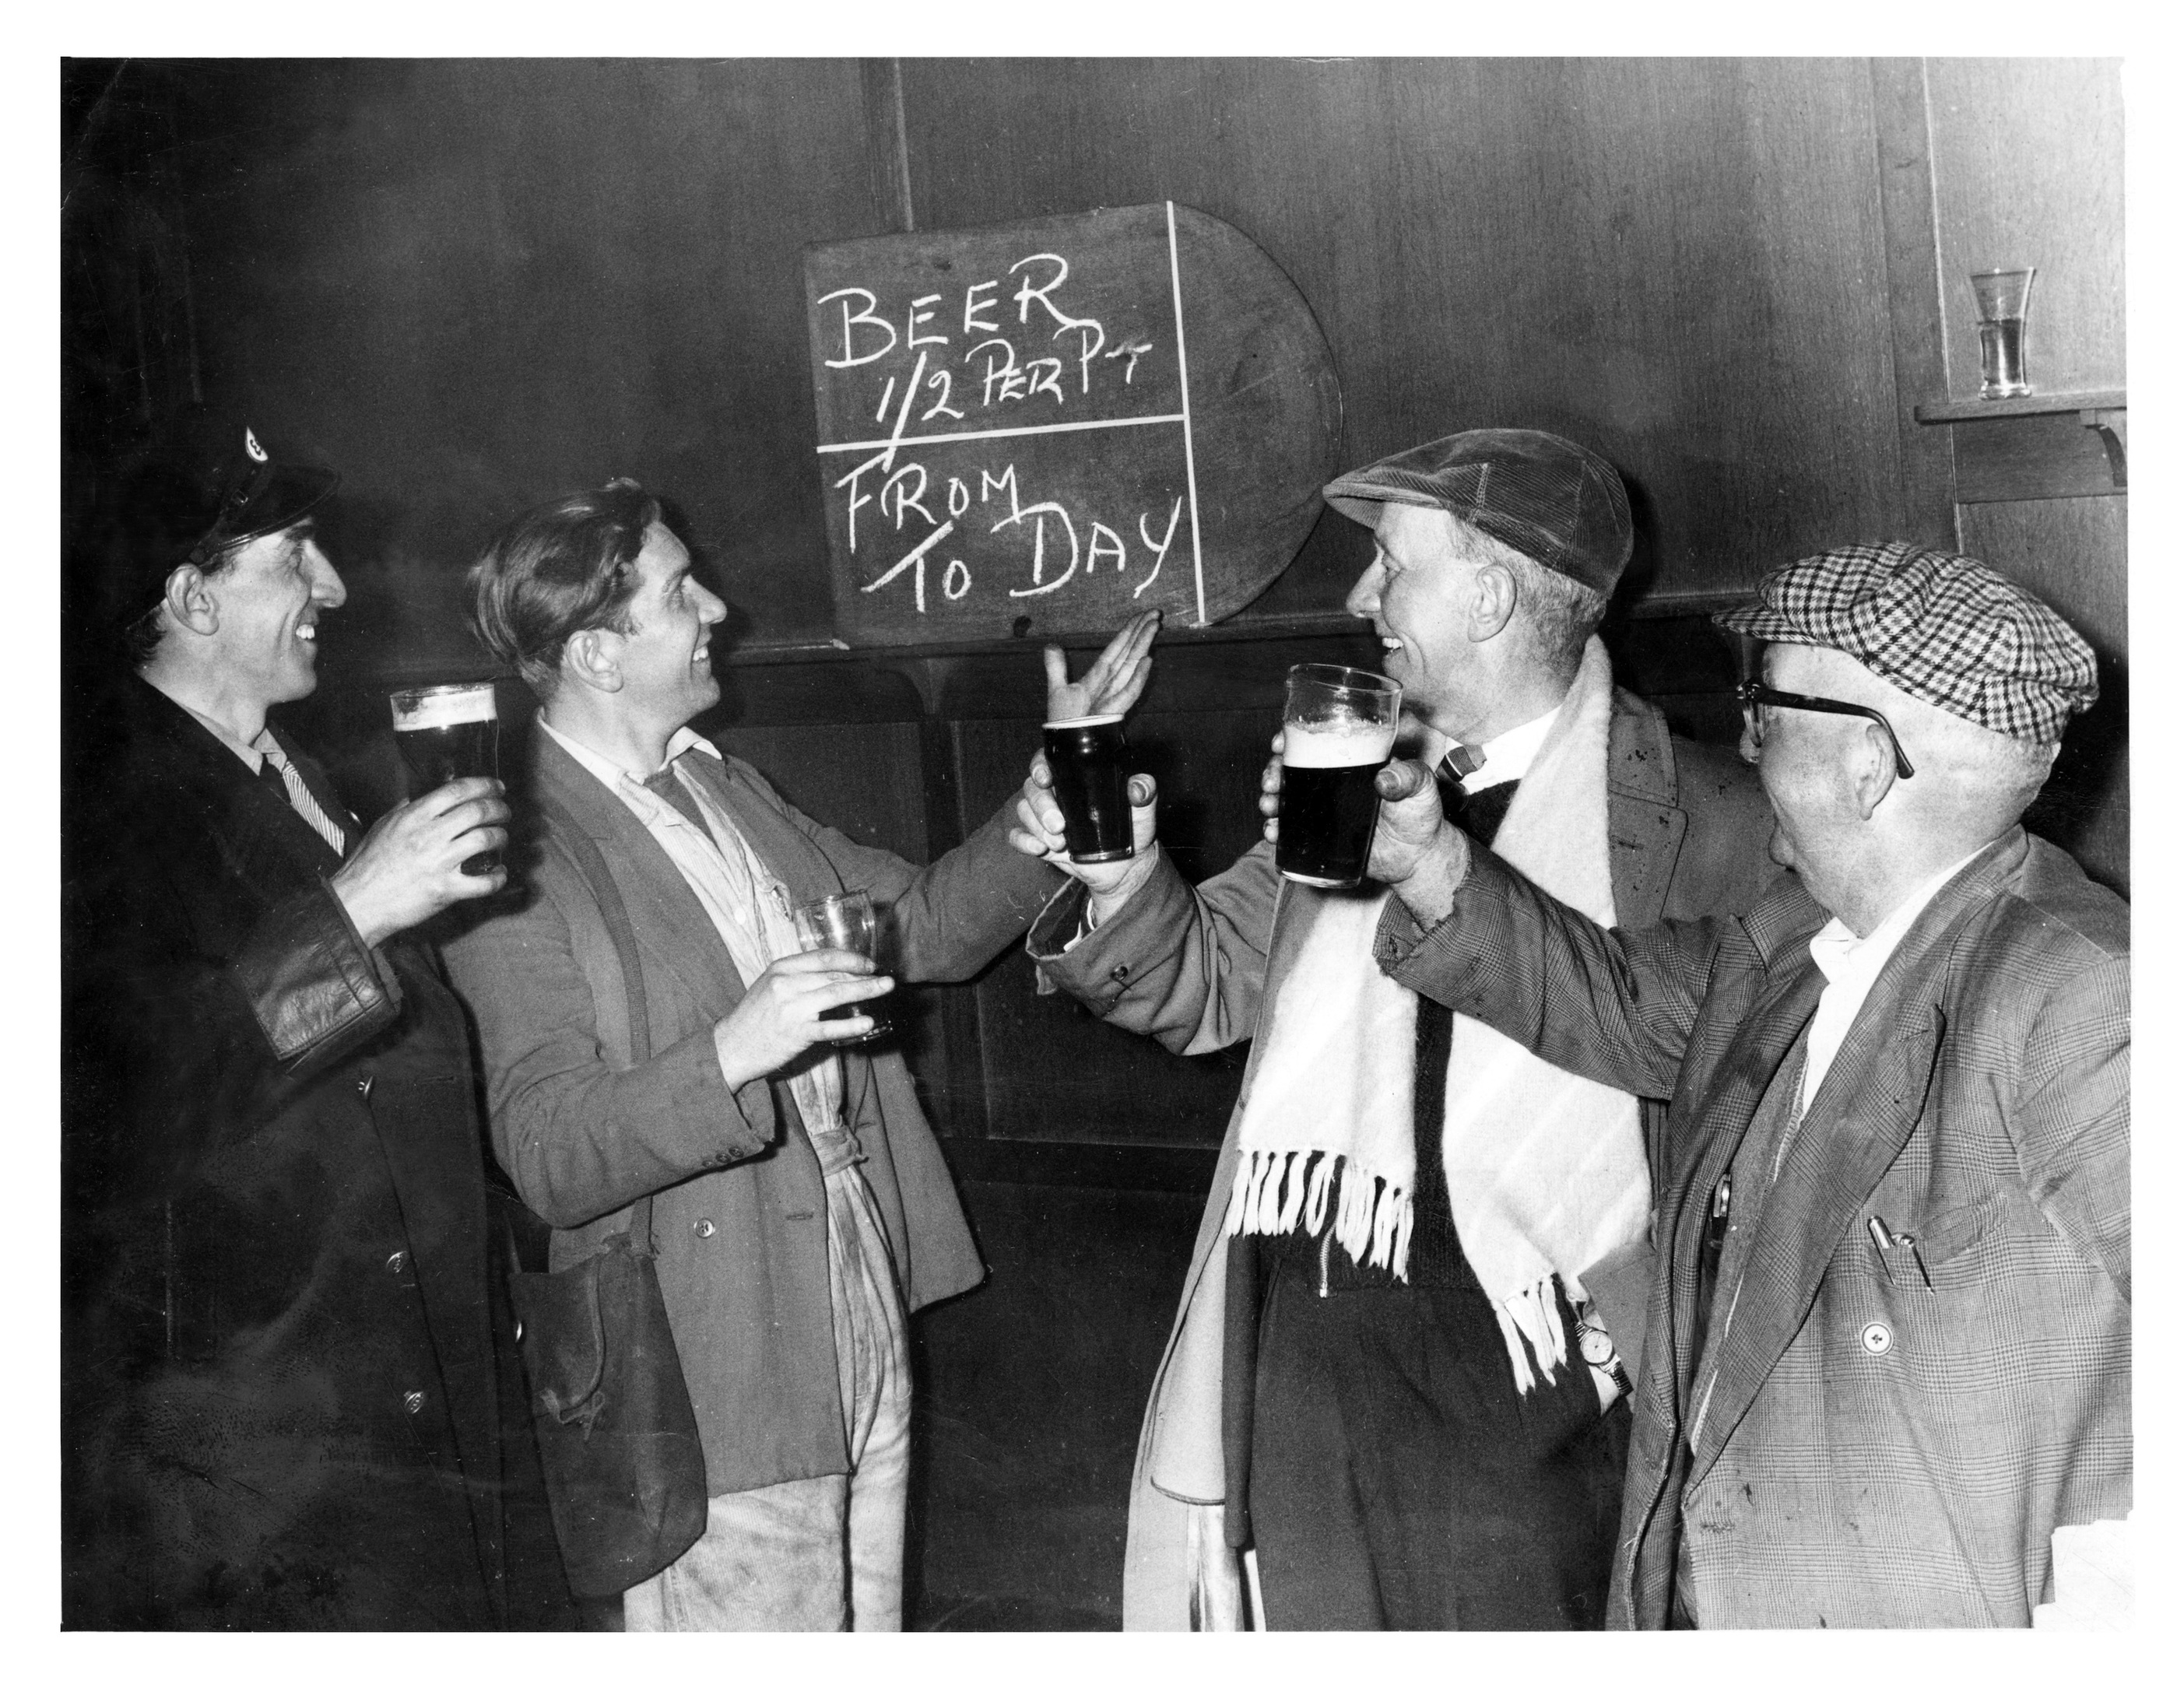 Customers at the City Bar raise their glasses to the new price for a pint of beer.